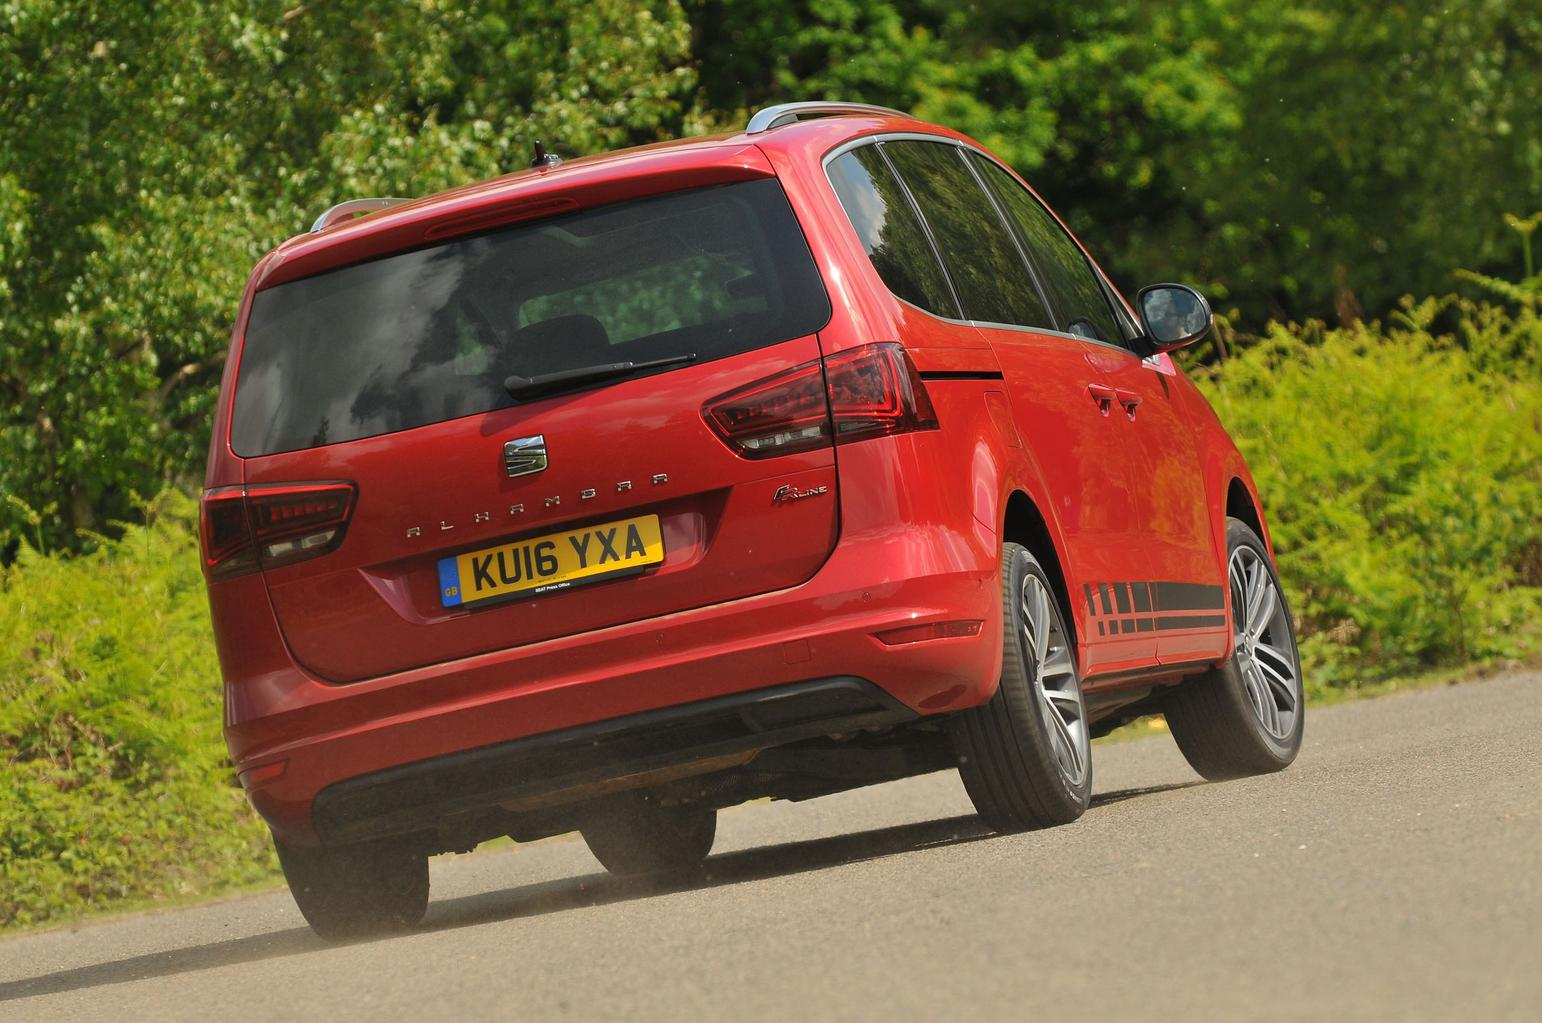 2016 Seat Alhambra 2.0 TDI FR Line review